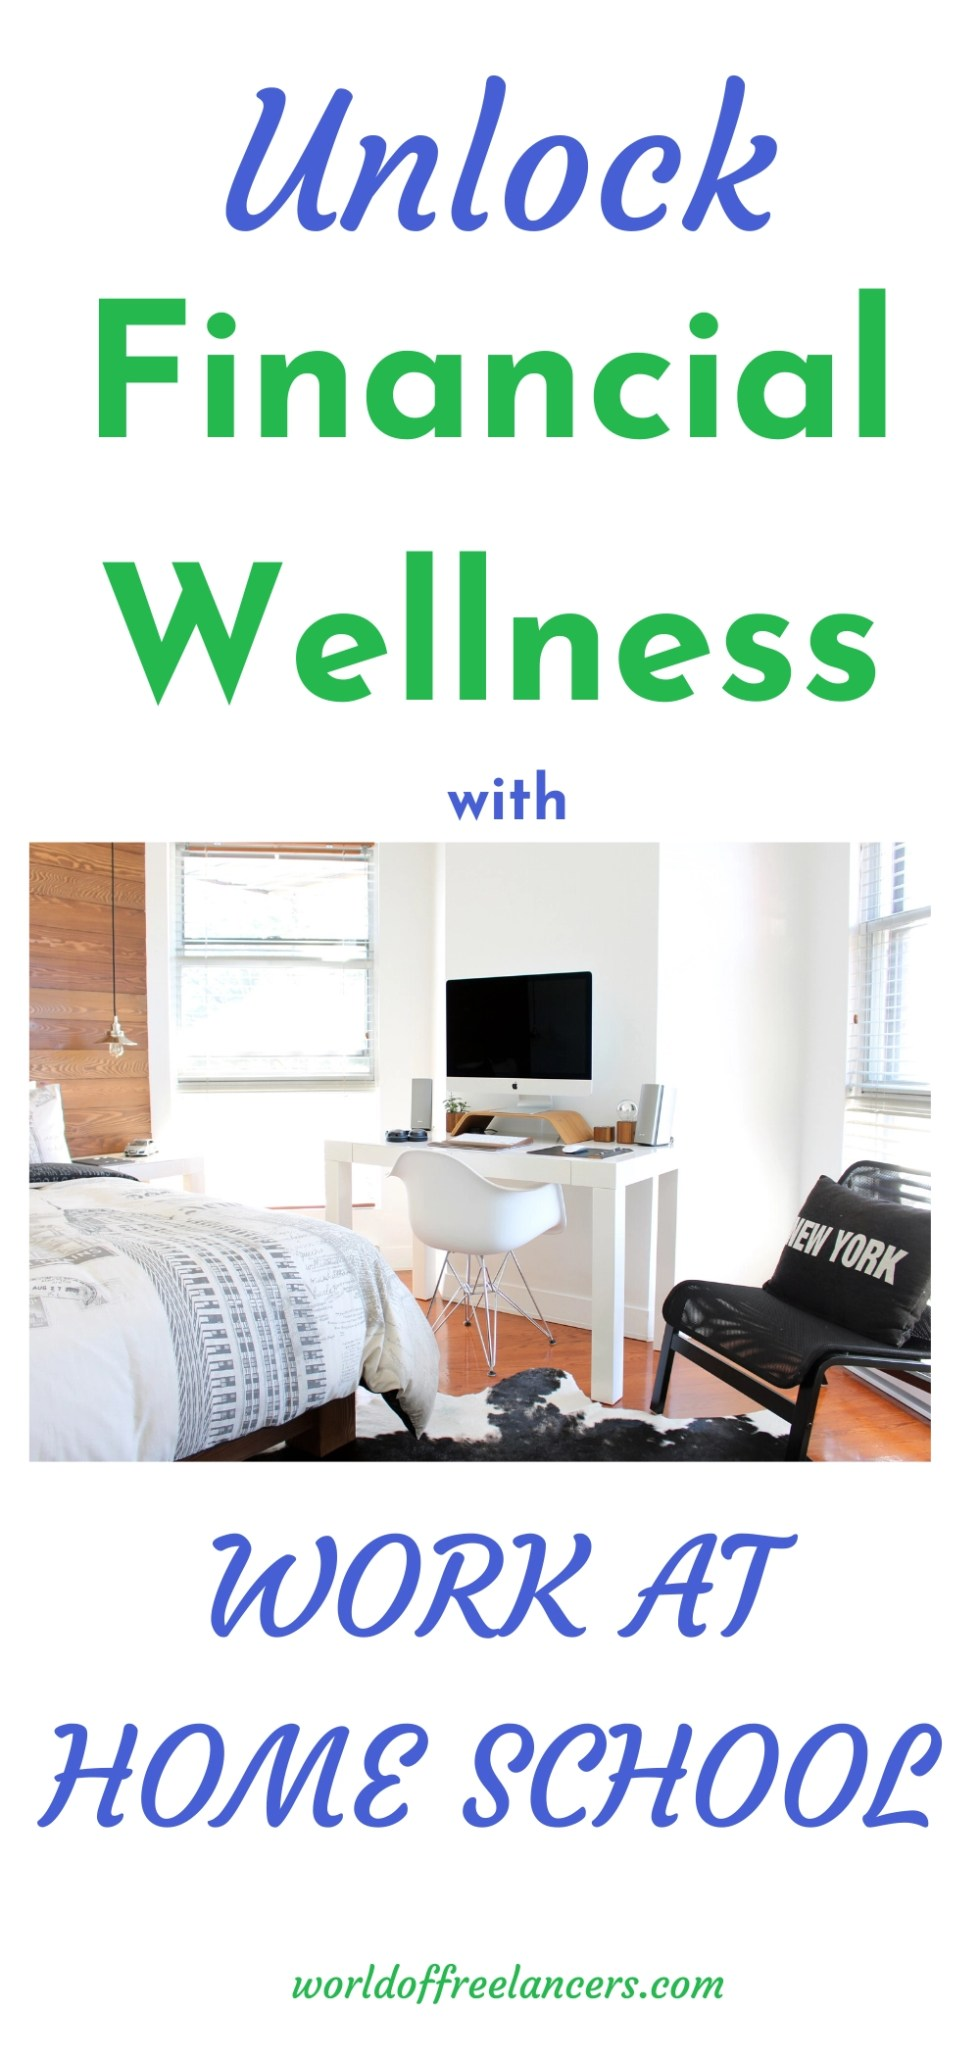 Unlock Financial Wellness with Work at Home School Pinterest image